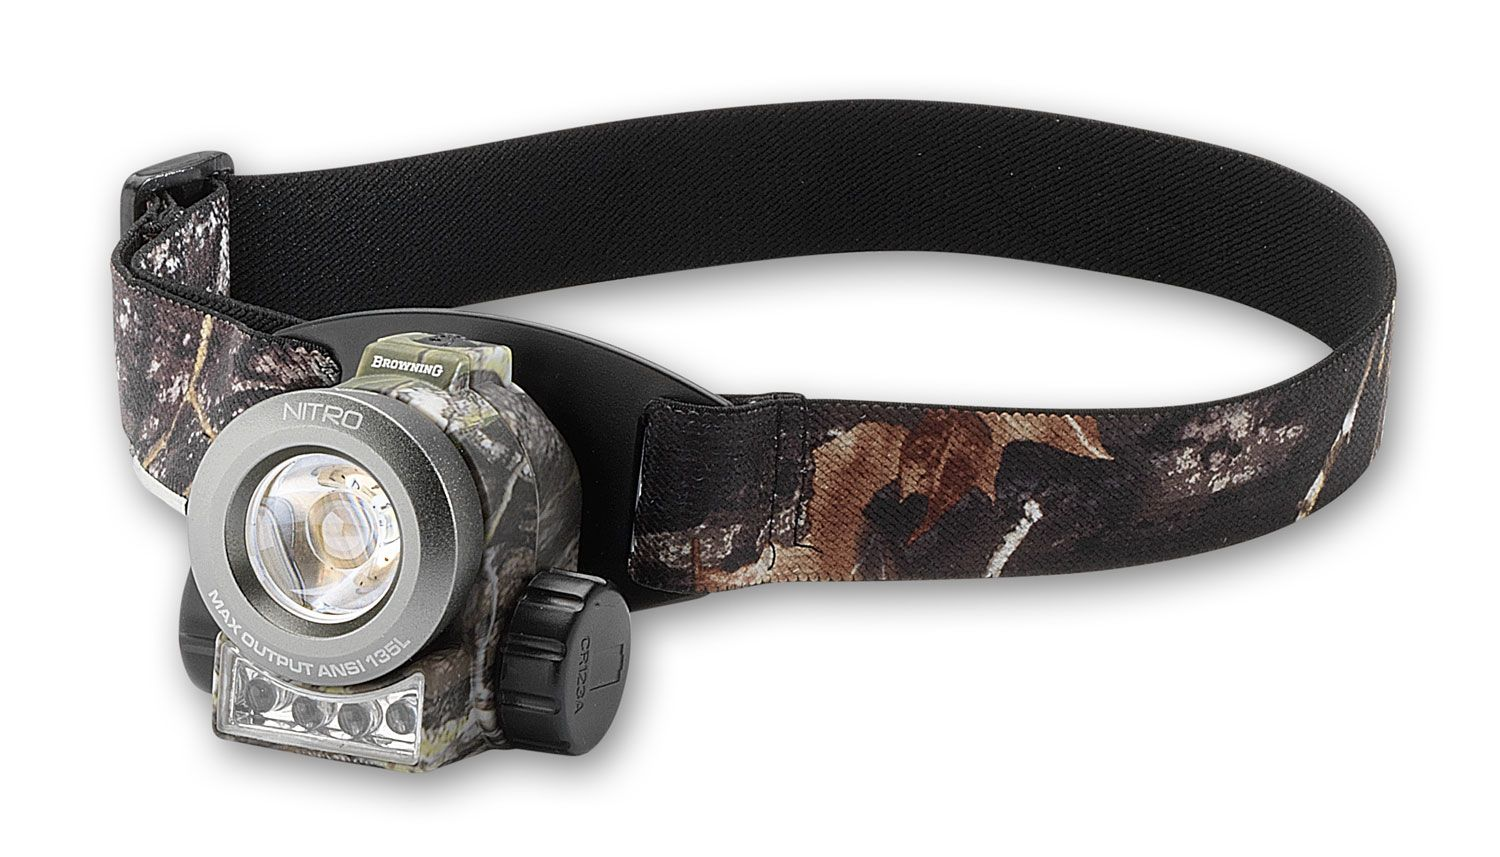 Browning Nitro USB Rechargeable Dual Fuel LED Headlamp, Camo Polymer Body and Strap, 375 Max Lumens